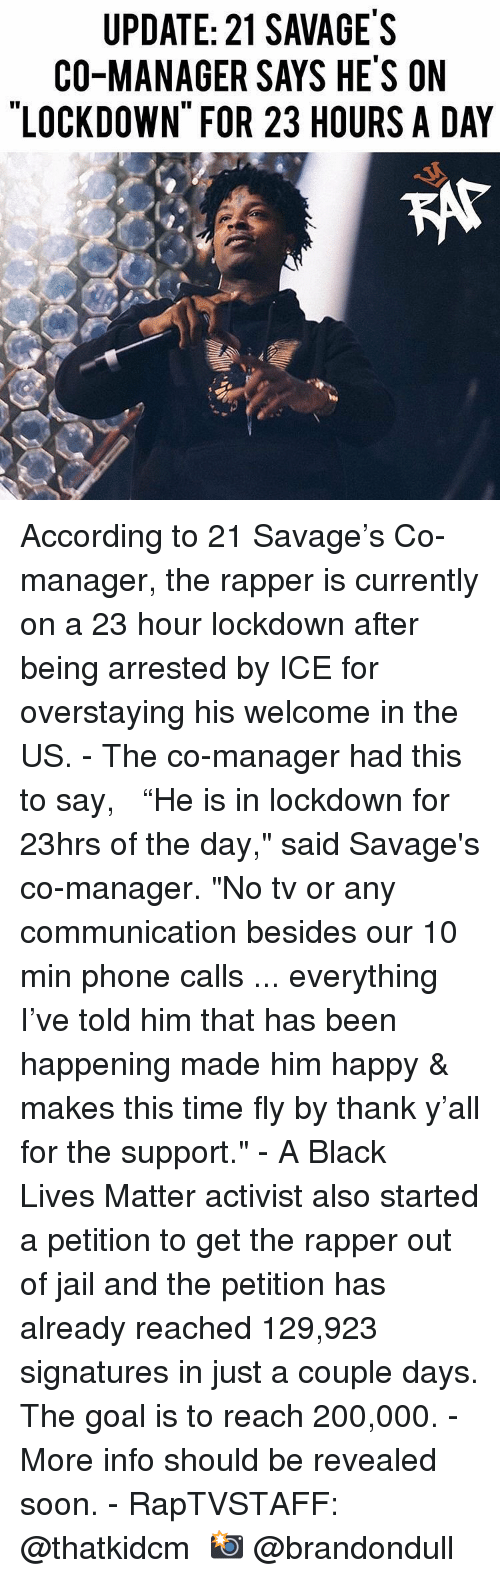 """savages: UPDATE: 21 SAVAGE'S  CO-MANAGER SAYS HE'S ON  LOCKDOWN FOR 23 HOURS A DAY  KAt According to 21 Savage's Co-manager, the rapper is currently on a 23 hour lockdown after being arrested by ICE for overstaying his welcome in the US. - The co-manager had this to say,   """"He is in lockdown for 23hrs of the day,"""" said Savage's co-manager. """"No tv or any communication besides our 10 min phone calls ... everything I've told him that has been happening made him happy & makes this time fly by thank y'all for the support."""" - A Black Lives Matter activist also started a petition to get the rapper out of jail and the petition has already reached 129,923 signatures in just a couple days. The goal is to reach 200,000. - More info should be revealed soon. - RapTVSTAFF: @thatkidcm 📸 @brandondull"""